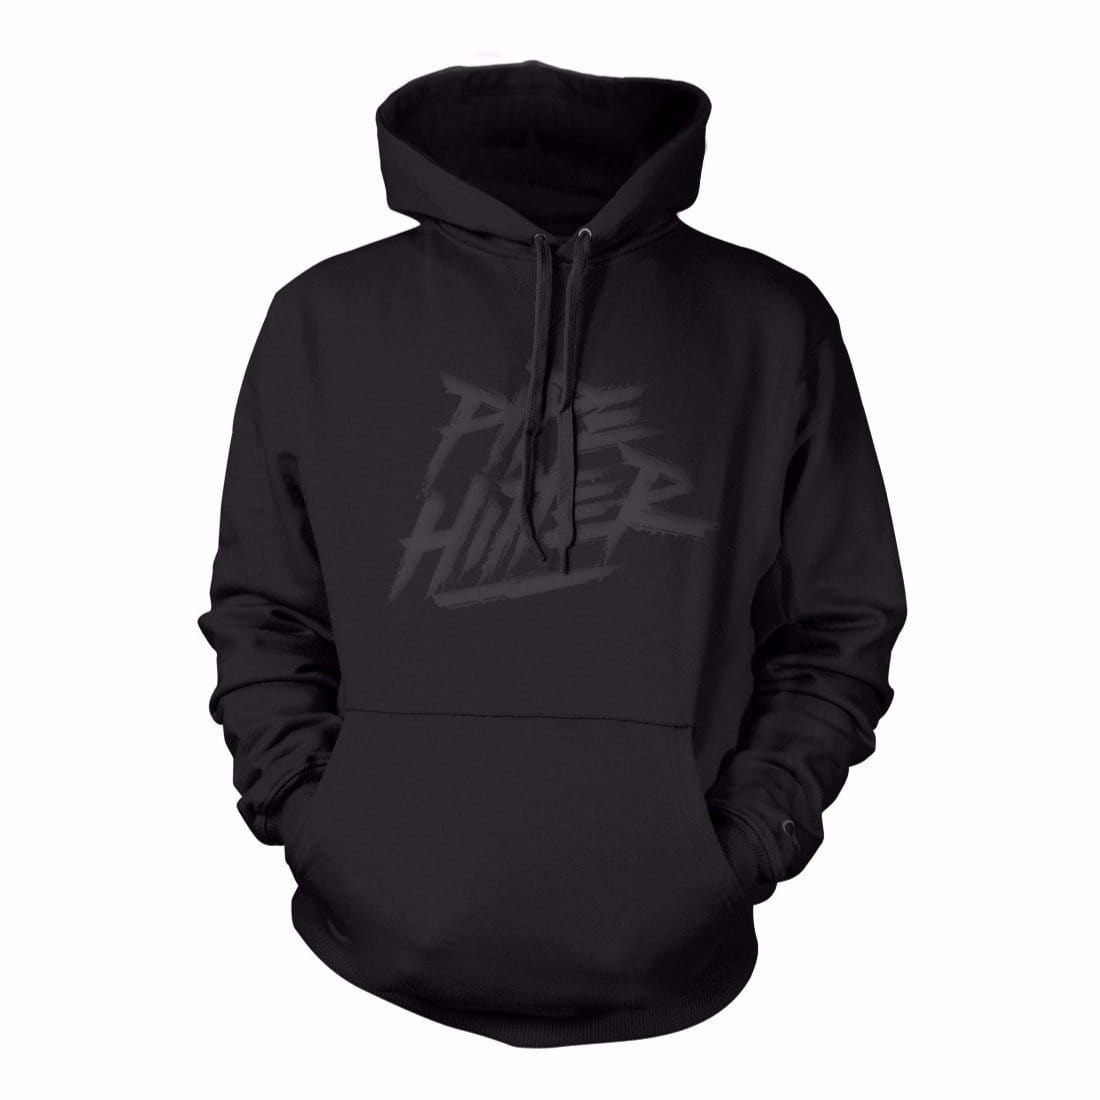 Pipe Hitter Hoodie - Black/Grey - Hoodies - Pipe Hitters Union